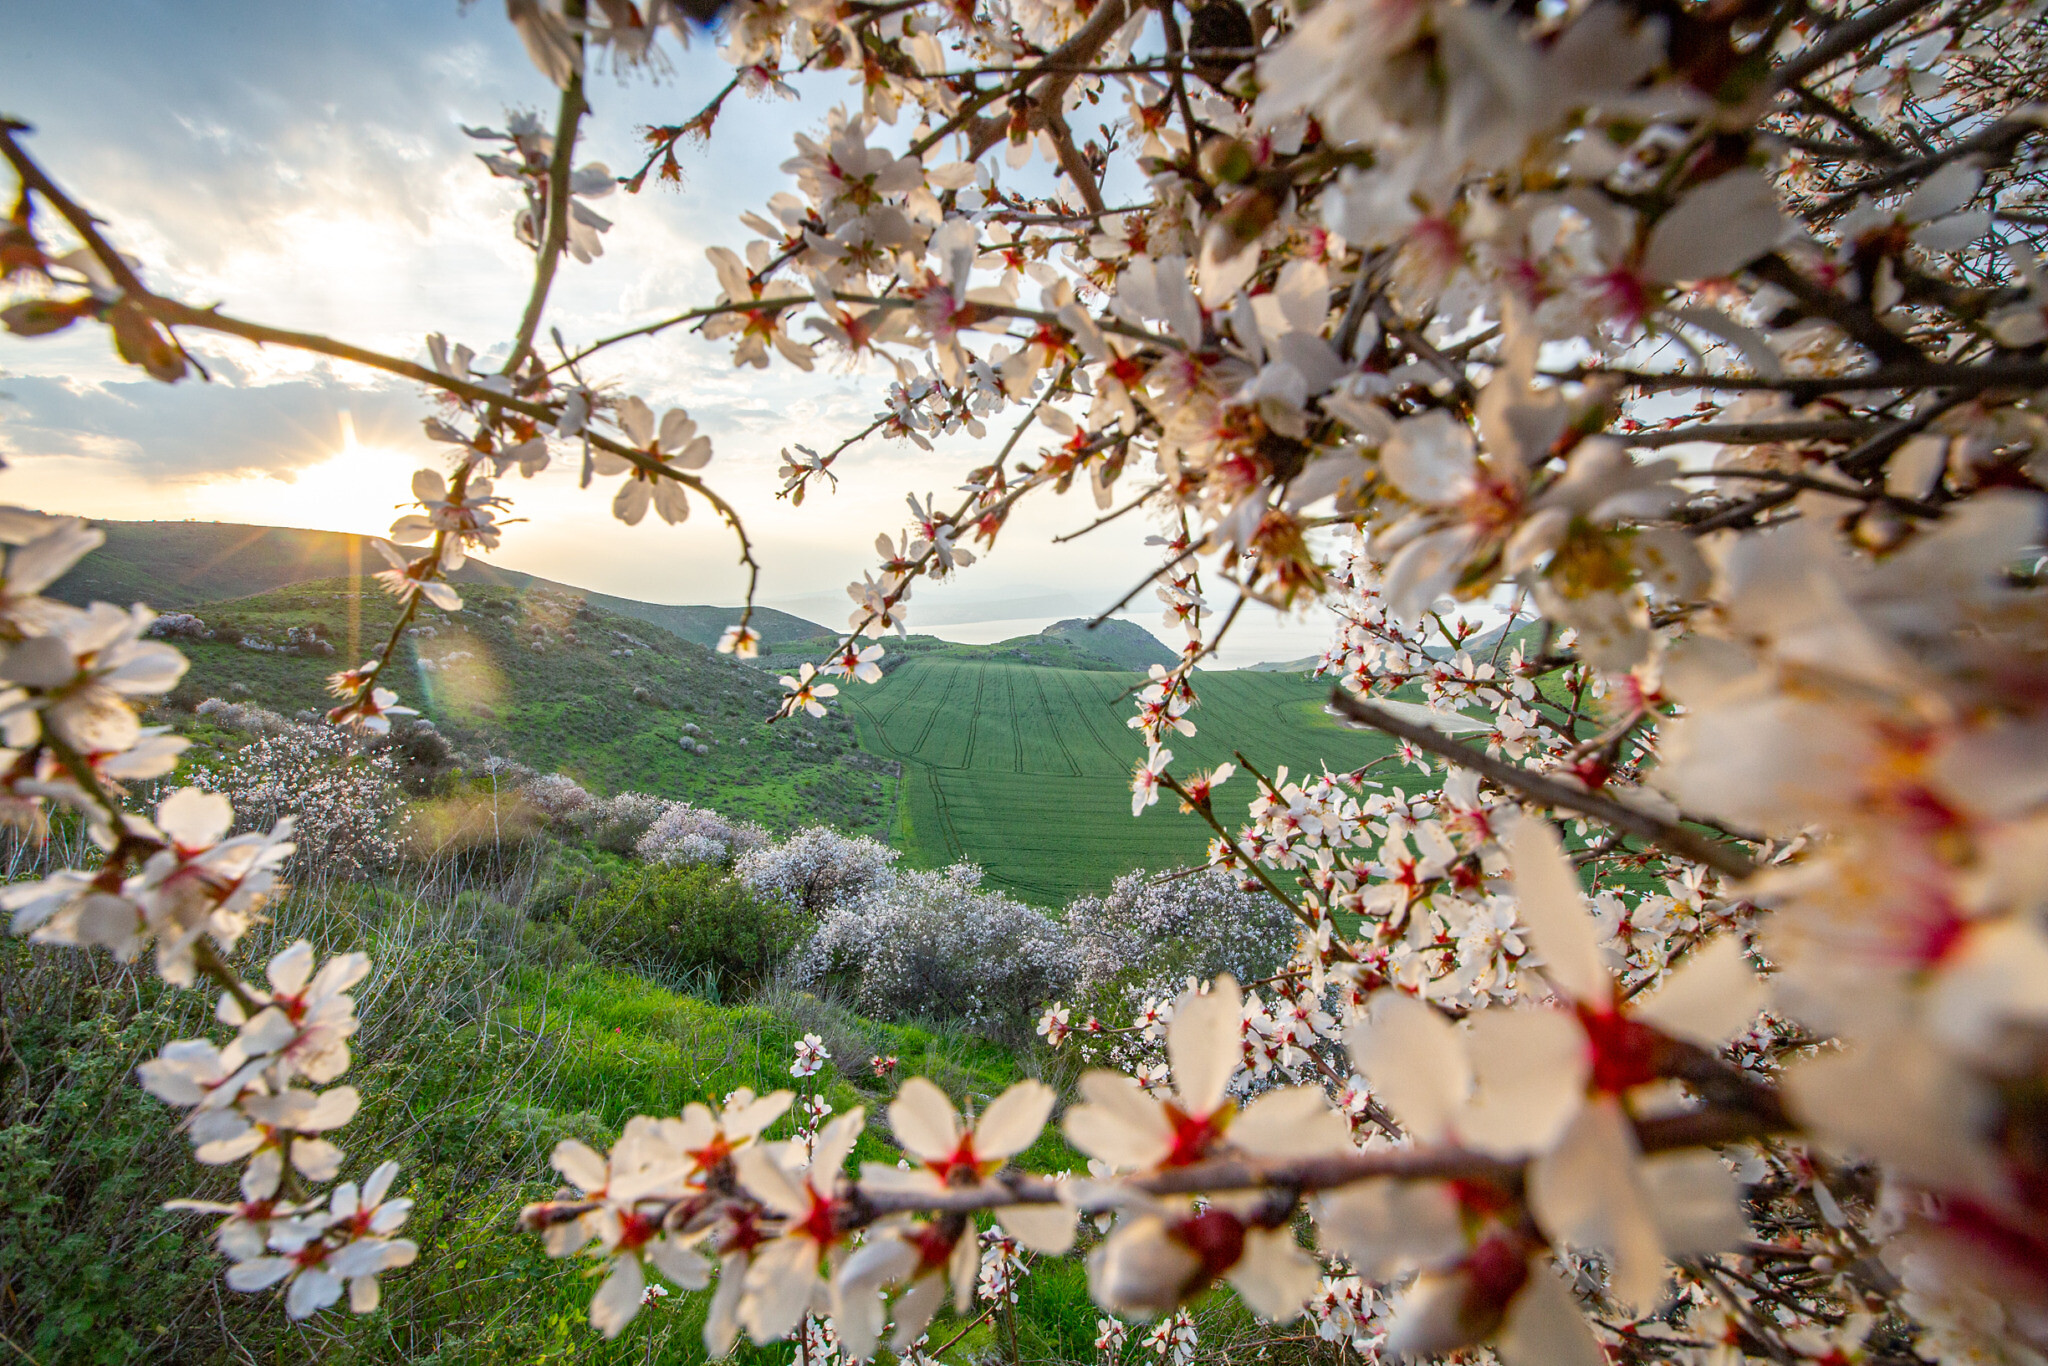 Almond trees blossom in the Golan Heights, on February 27, 2020. (Maor Kinsbursky/Flash90)